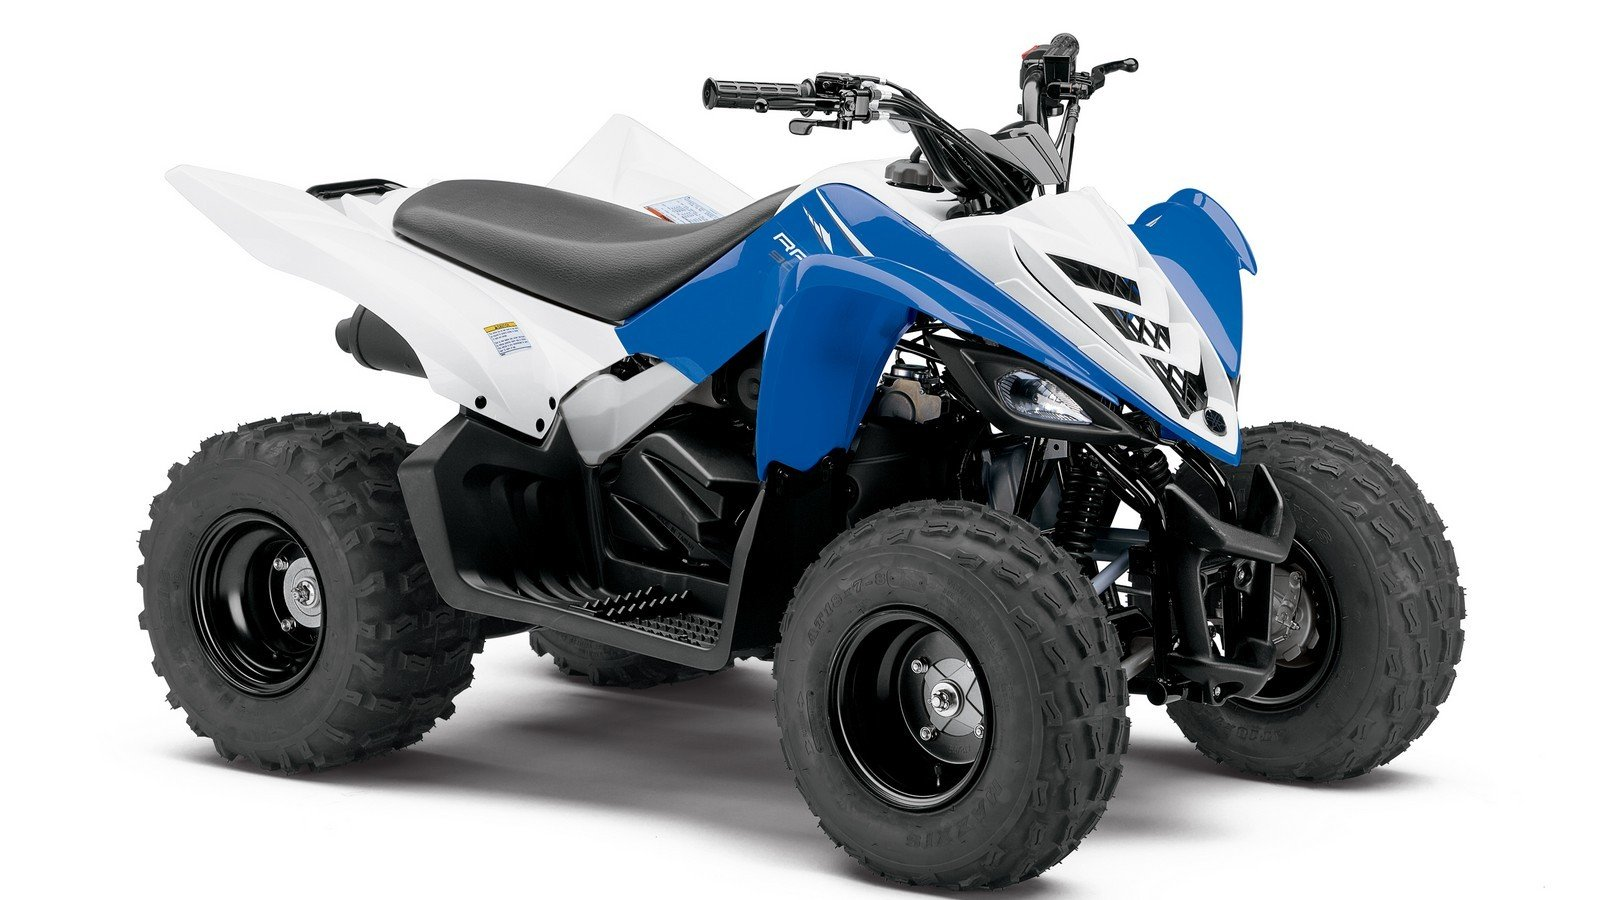 2013 yamaha raptor 90 picture 465051 motorcycle review